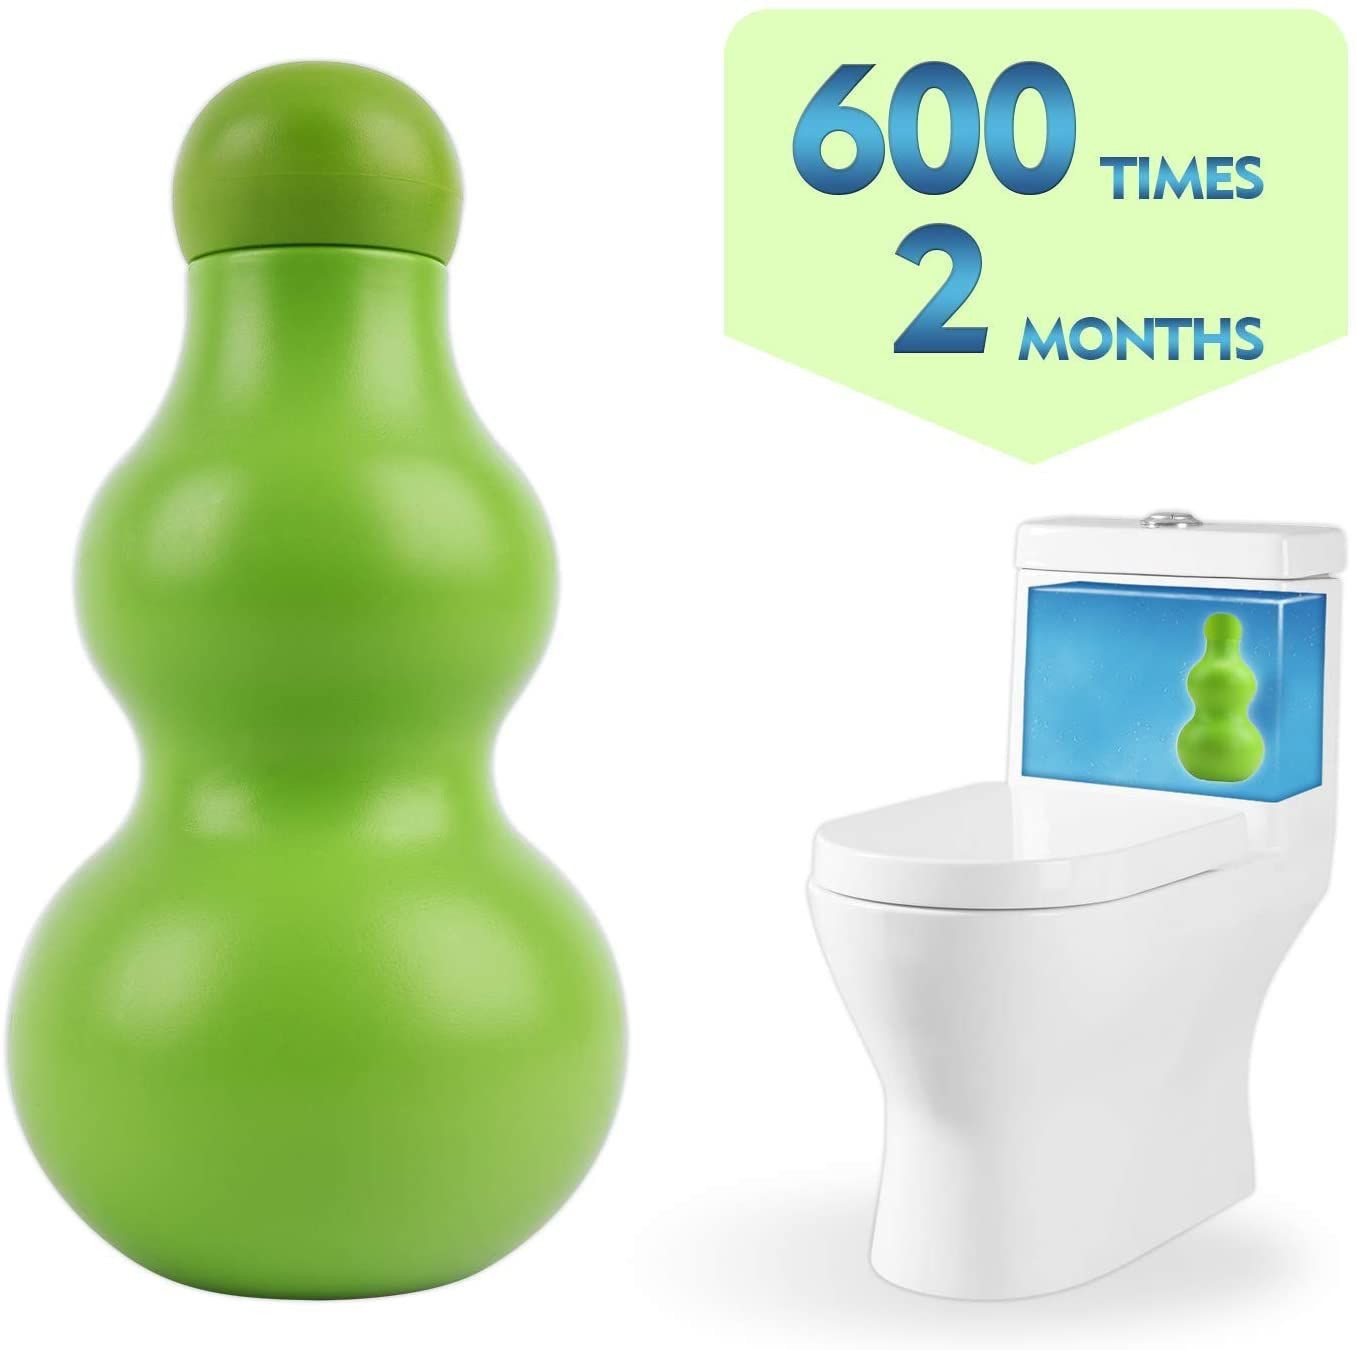 Pure-Eco Automatic Toilet Bowl Cleaner New Generation-600 Times Flushes (Green, 2-Pack)